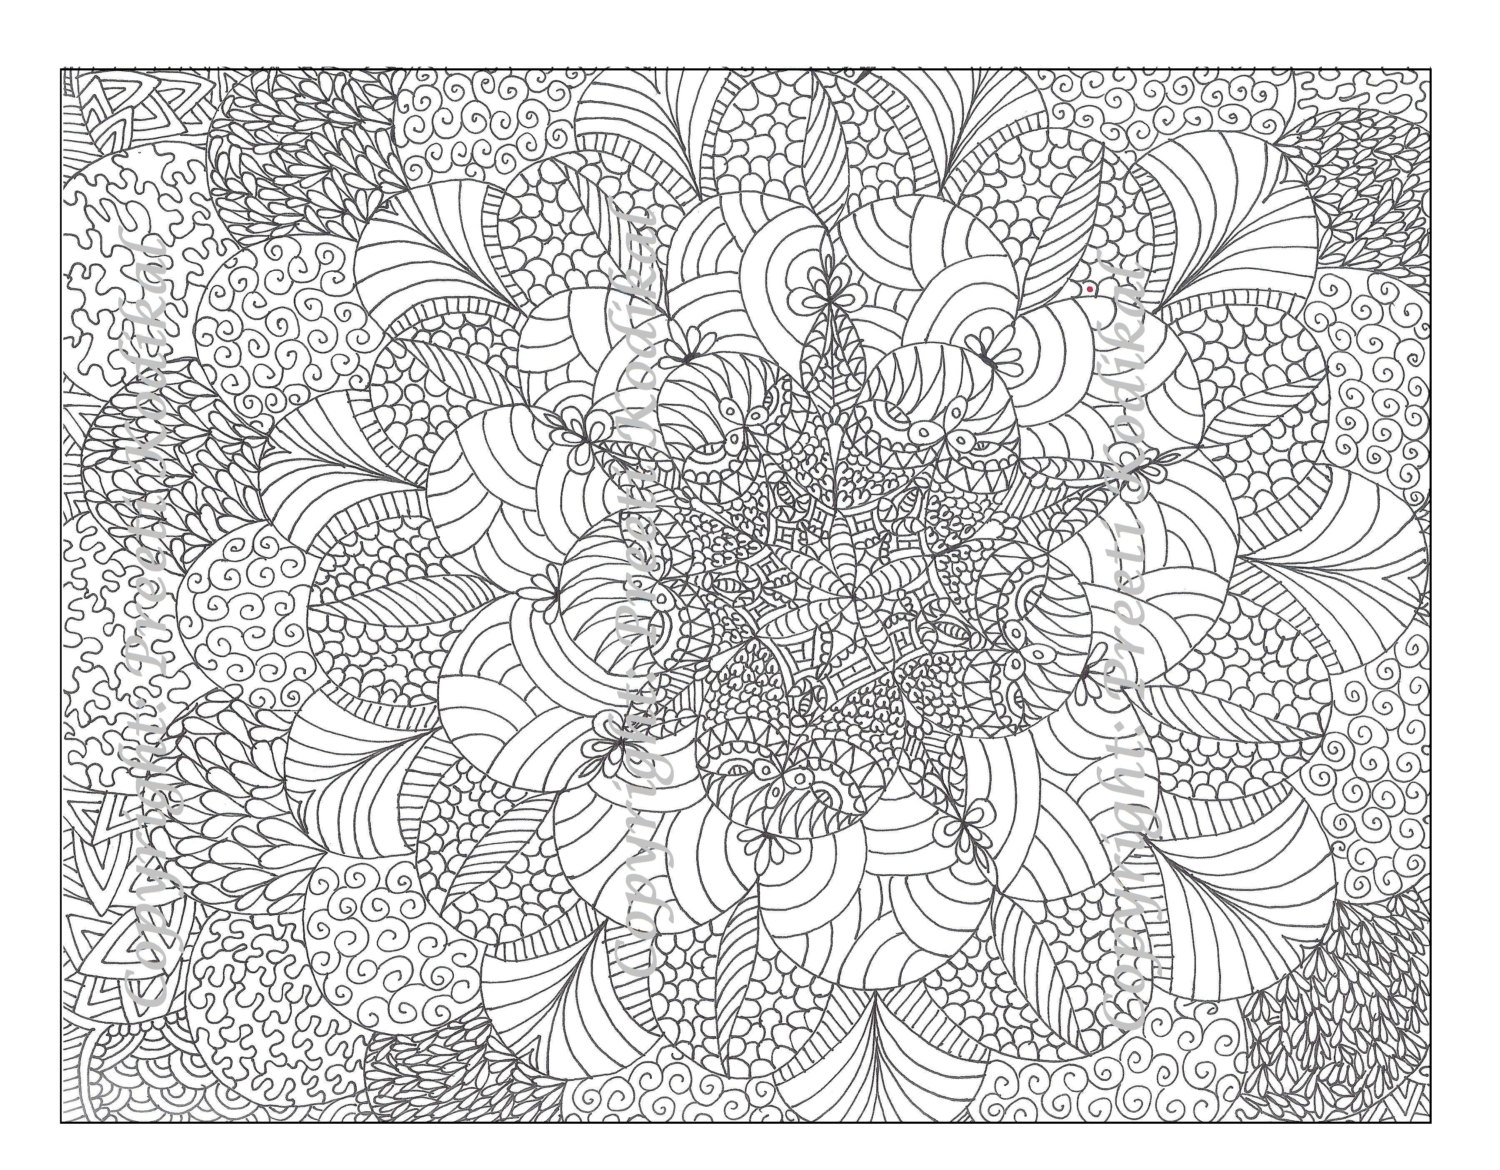 Coloring Pages Adults Free Printable Abstract Coloring Pages For Adults